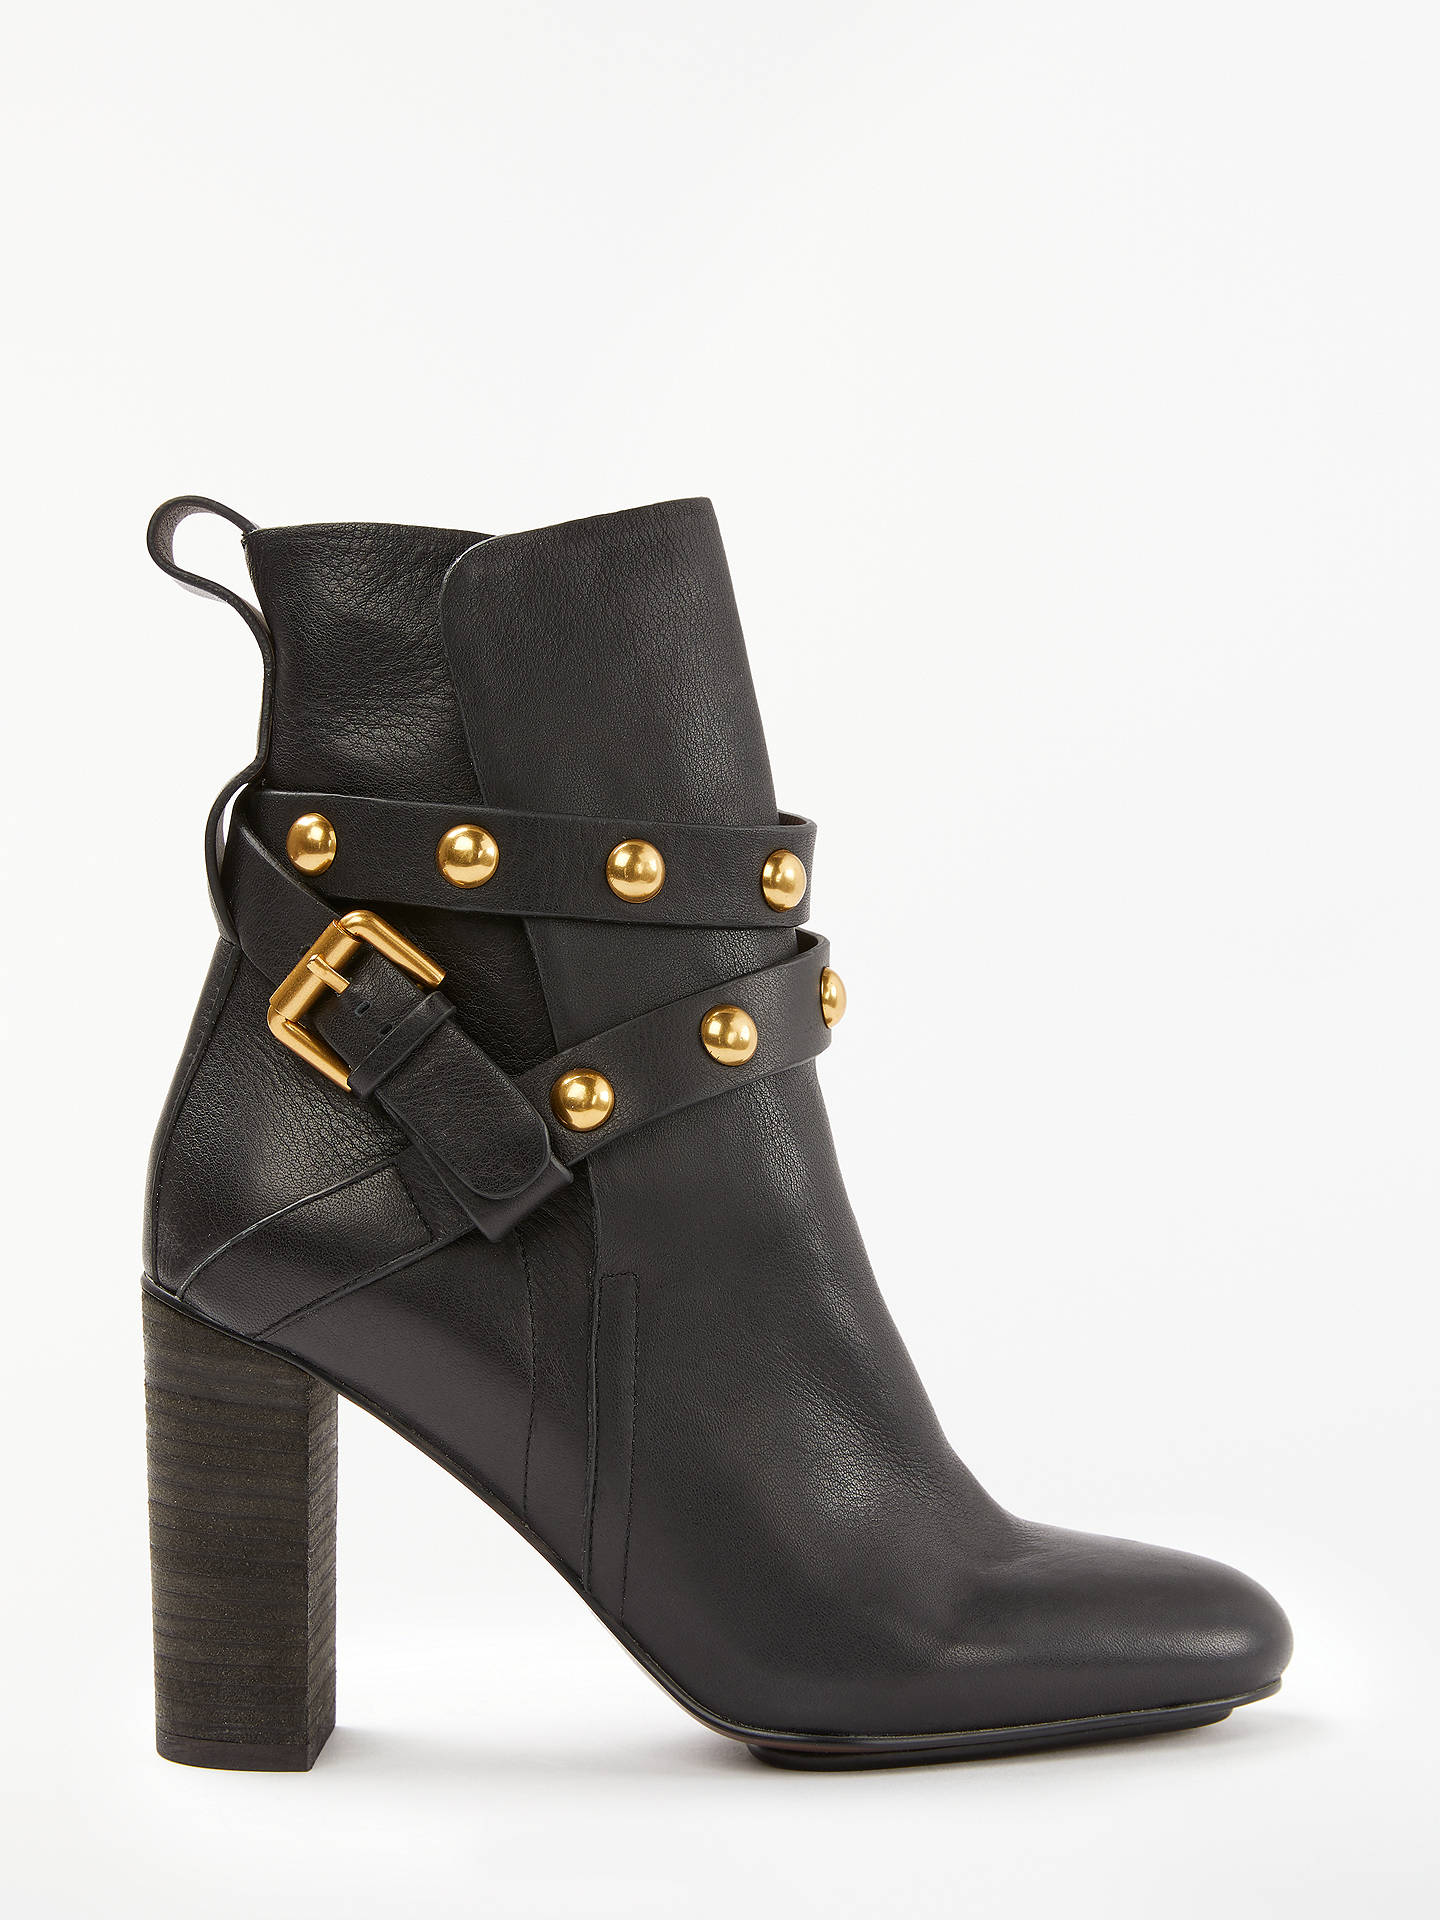 c67b55ca629 See By Chloé Stud Embellished Block Heel Ankle Boots, Black Leather ...